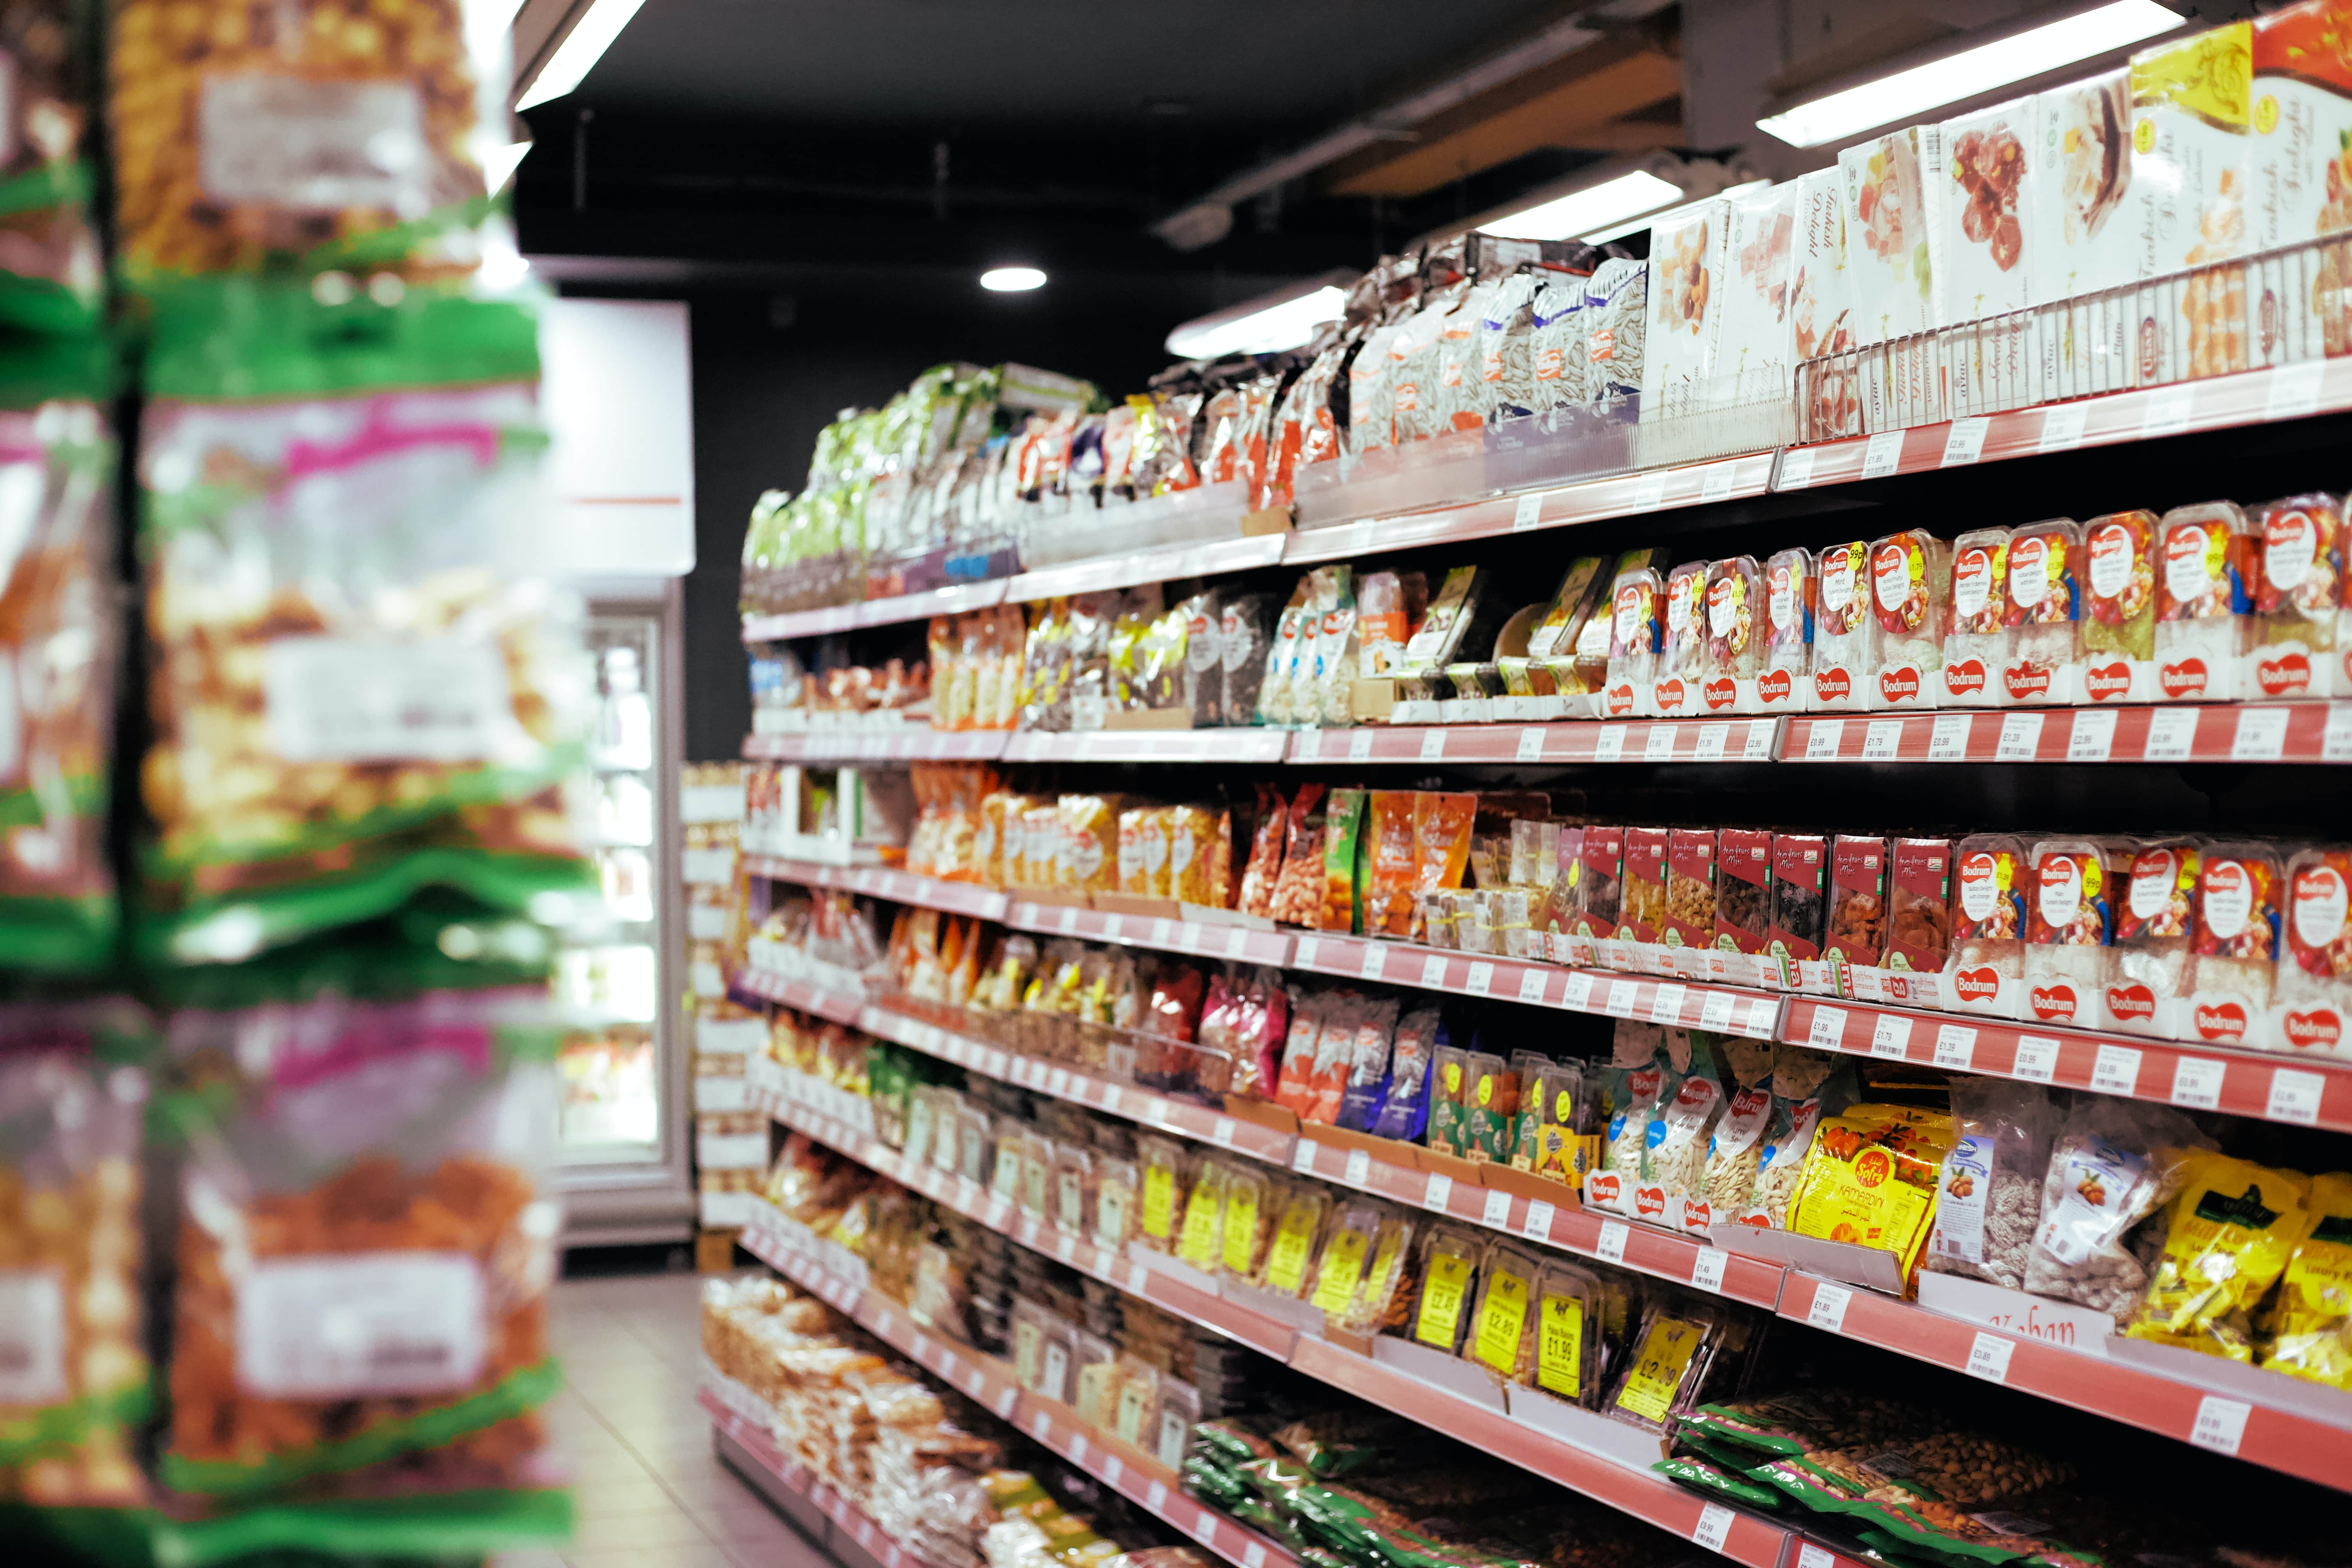 Mandatory Health Star Ratings - a quick way to select foods when shopping